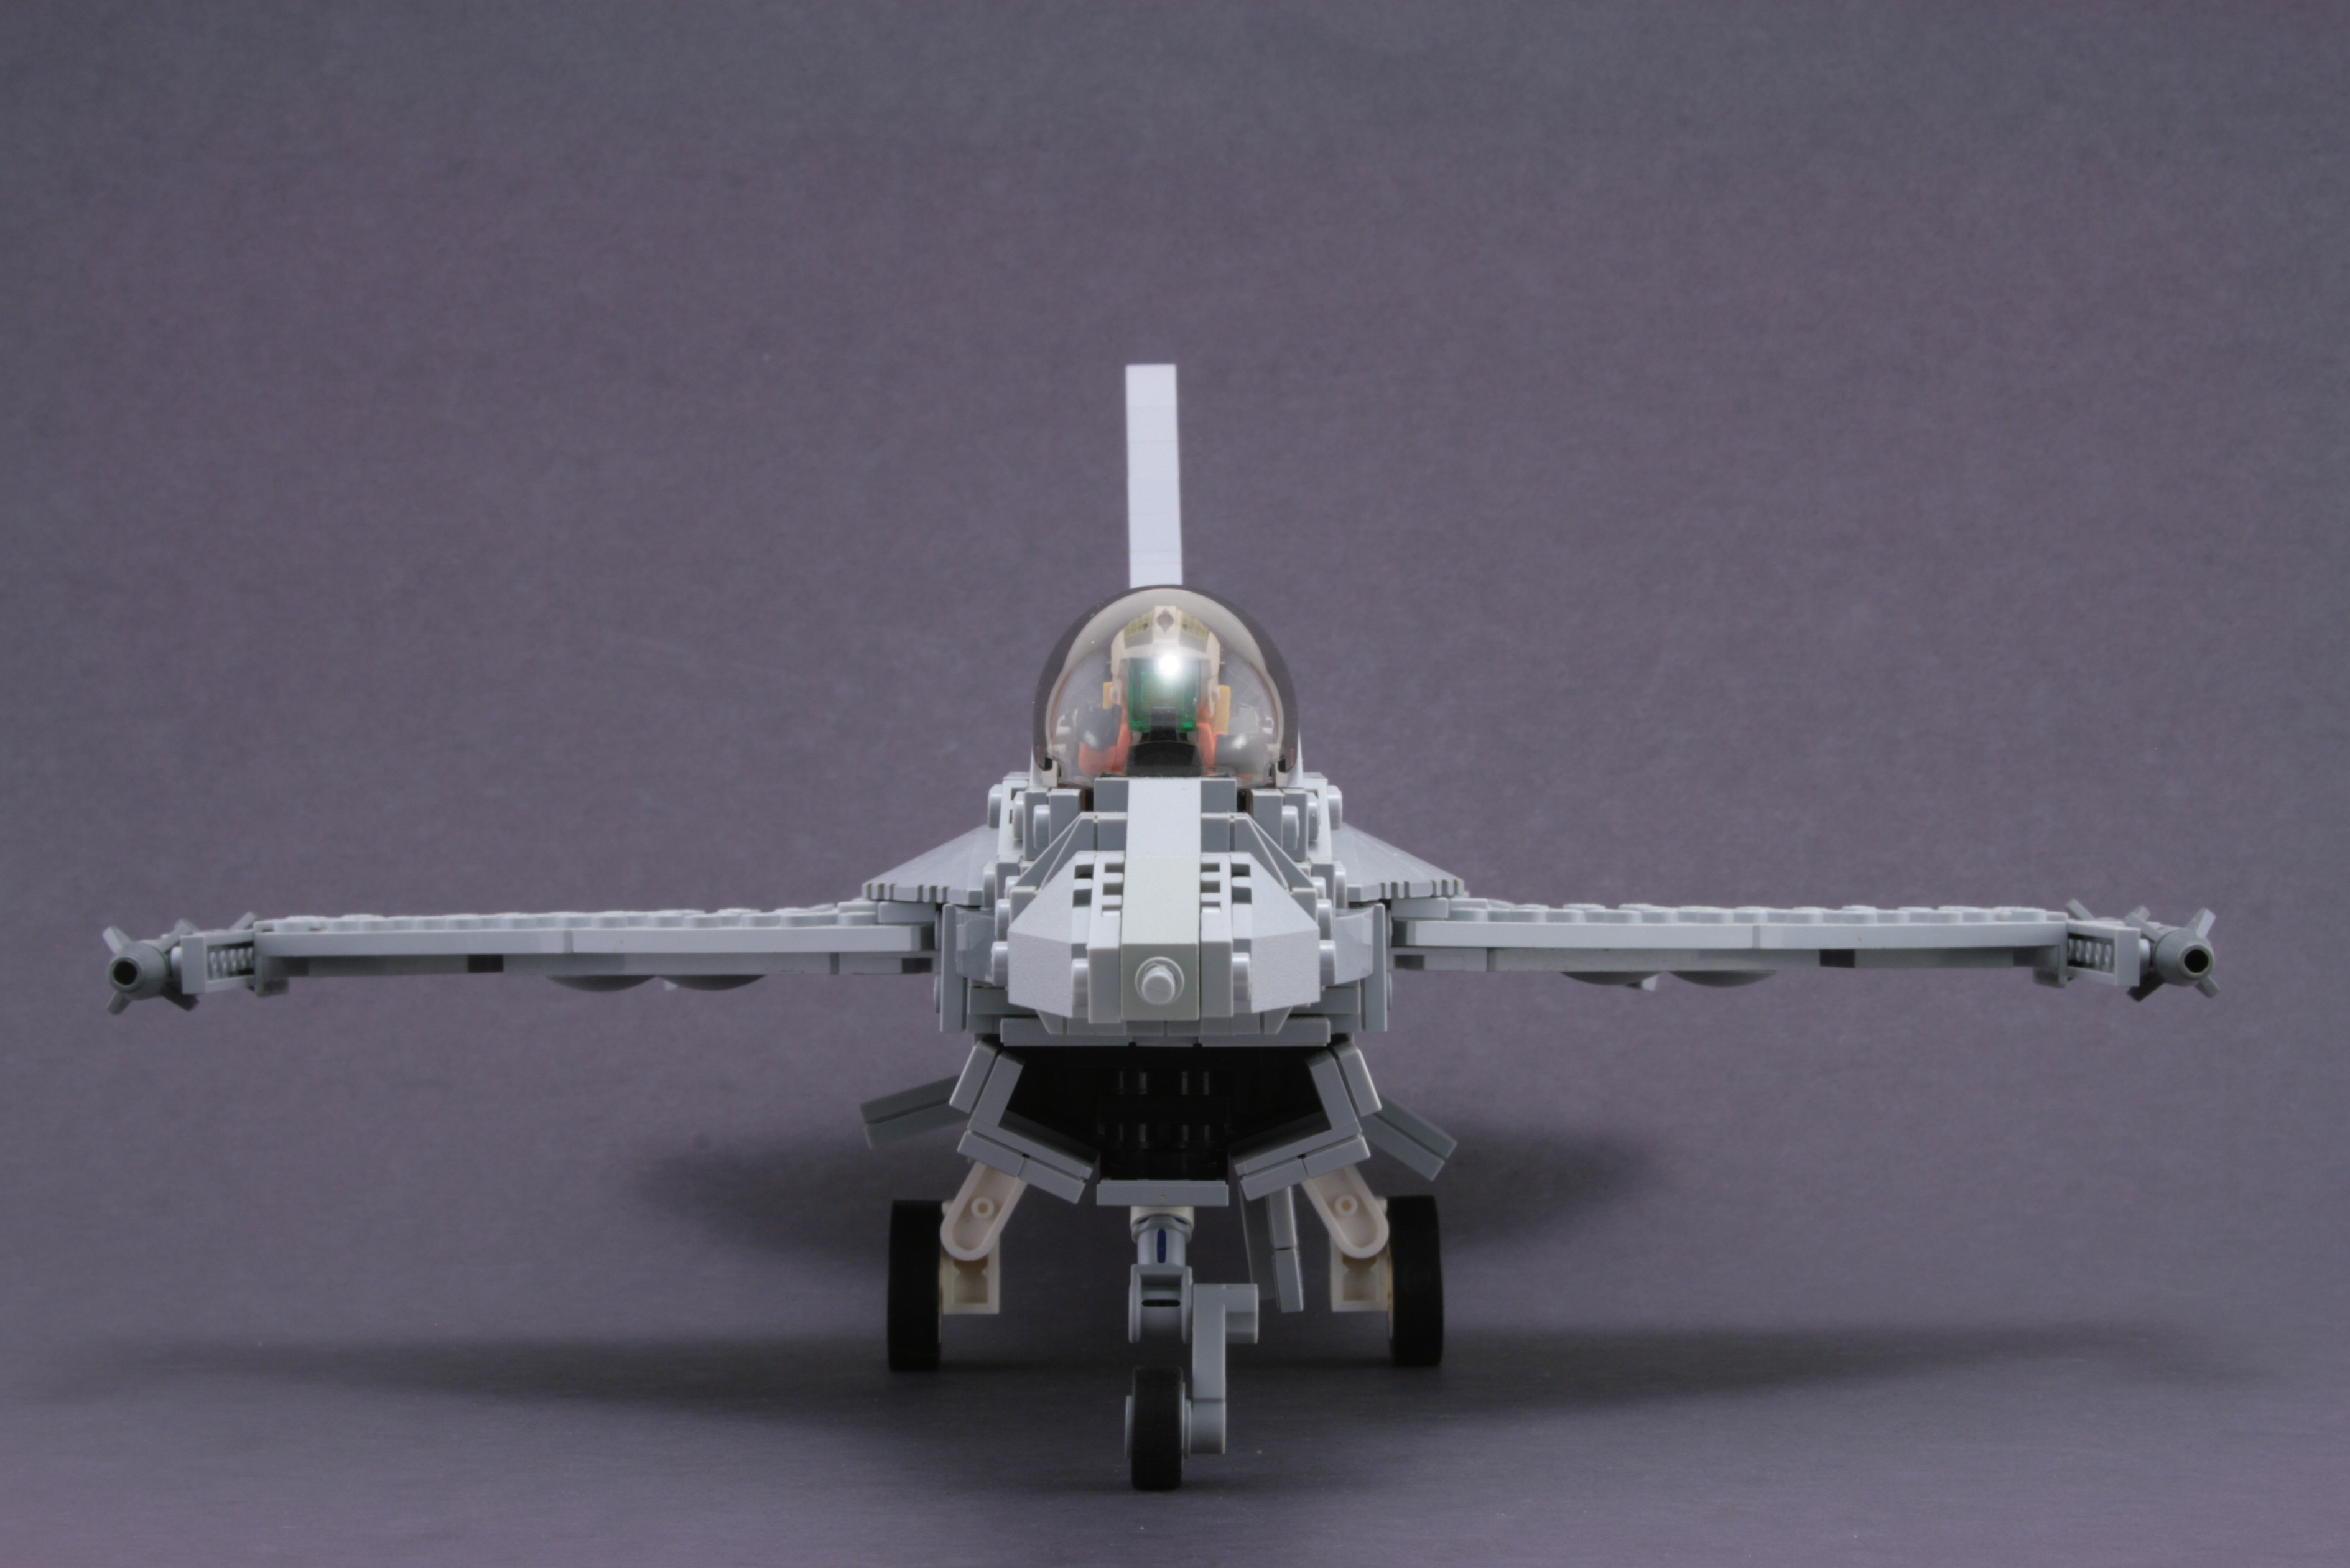 File LEGO F 16 Fighting Falcon   Front view jpg   Wikimedia Commons File LEGO F 16 Fighting Falcon   Front view jpg